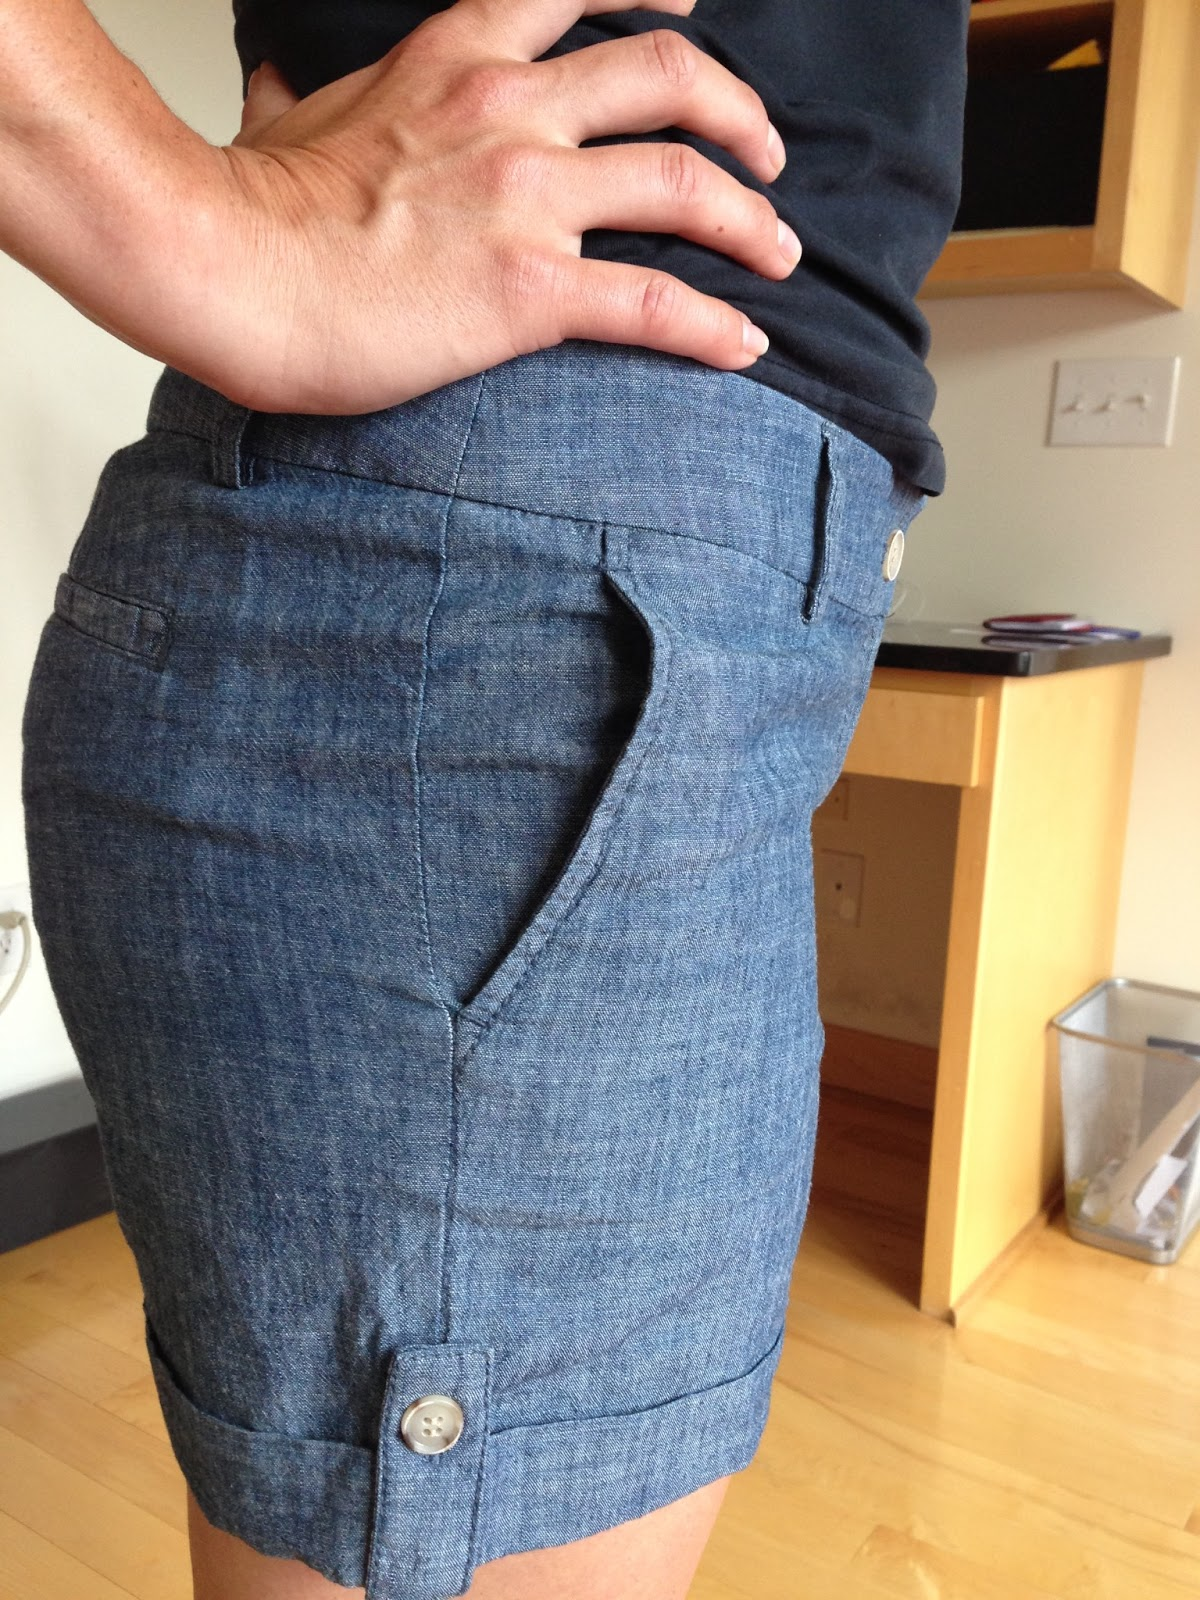 Food Fashion Home Quick Fix For Pants Pocket Buldge